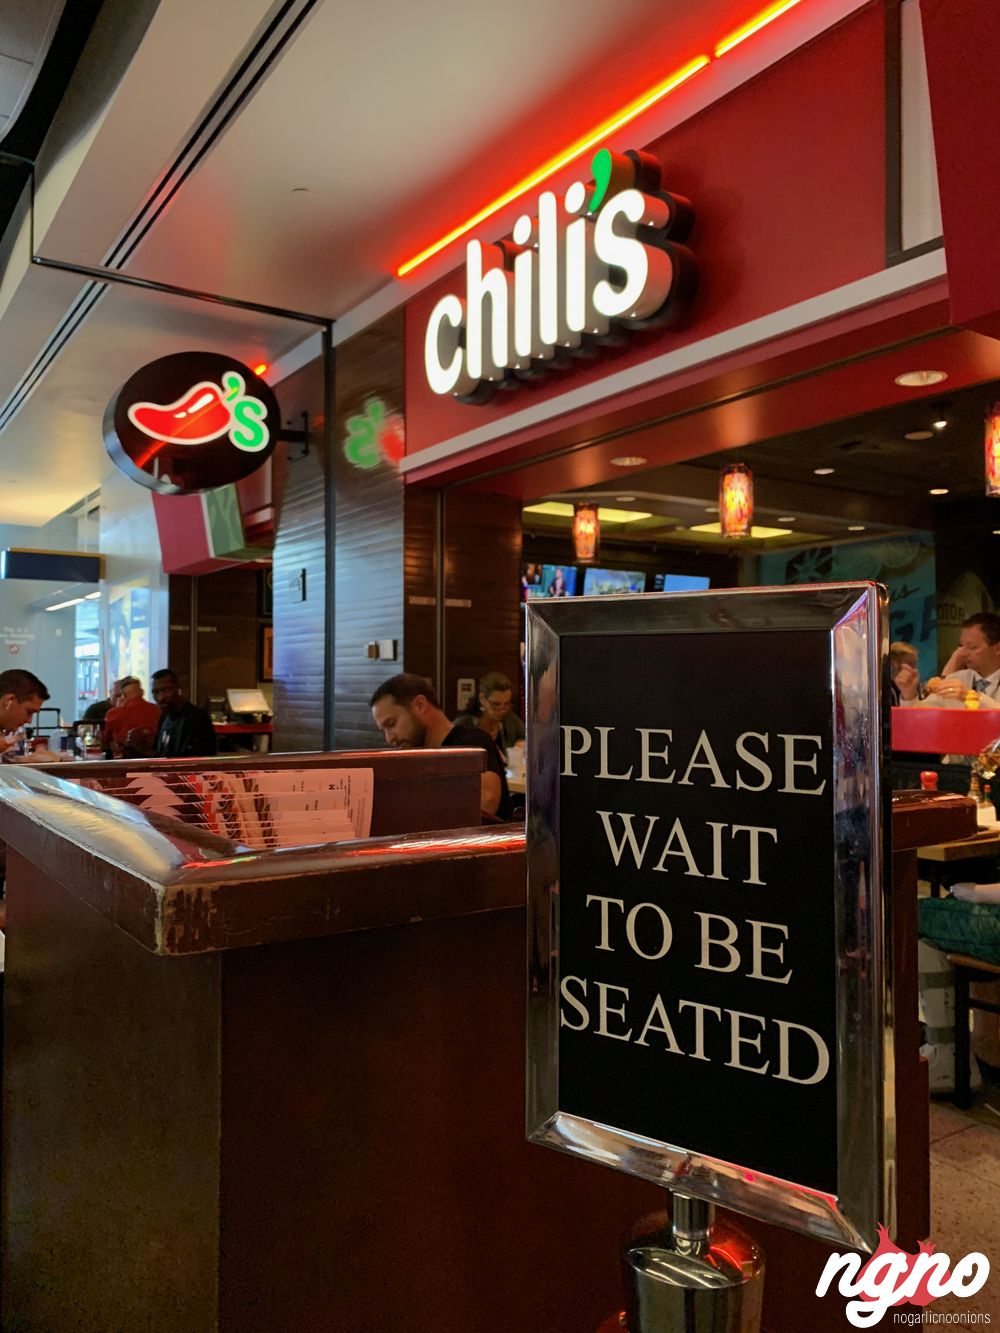 Chili's at The Airport in Las Vegas Serves Tasty American ...